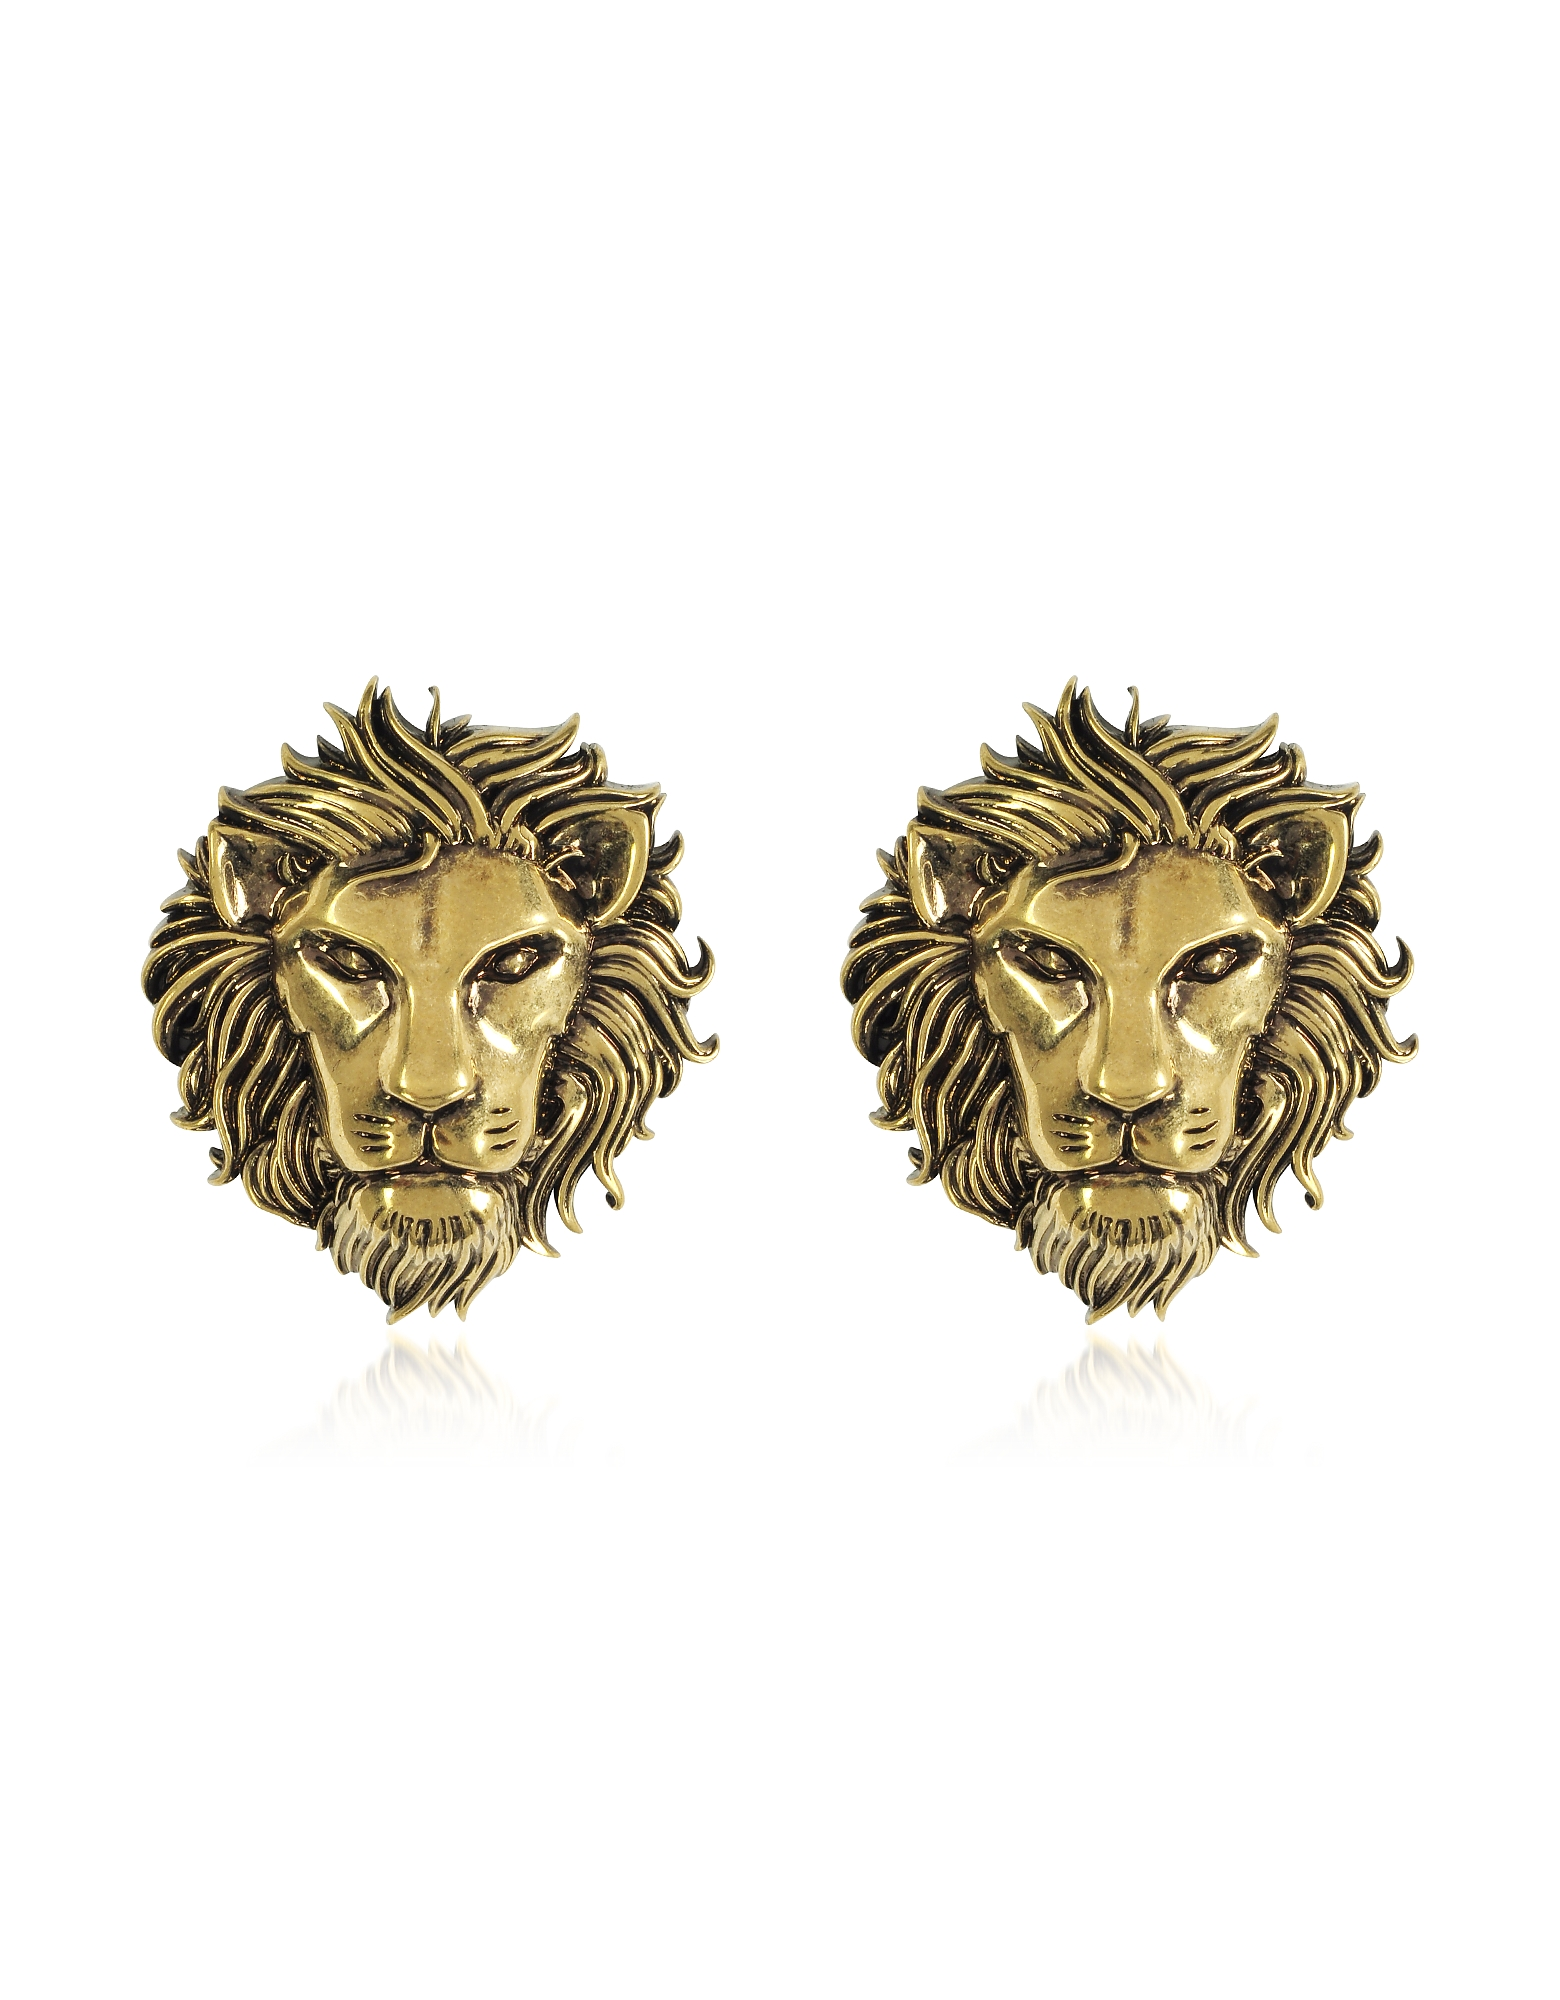 Golden Lion Head Earrings